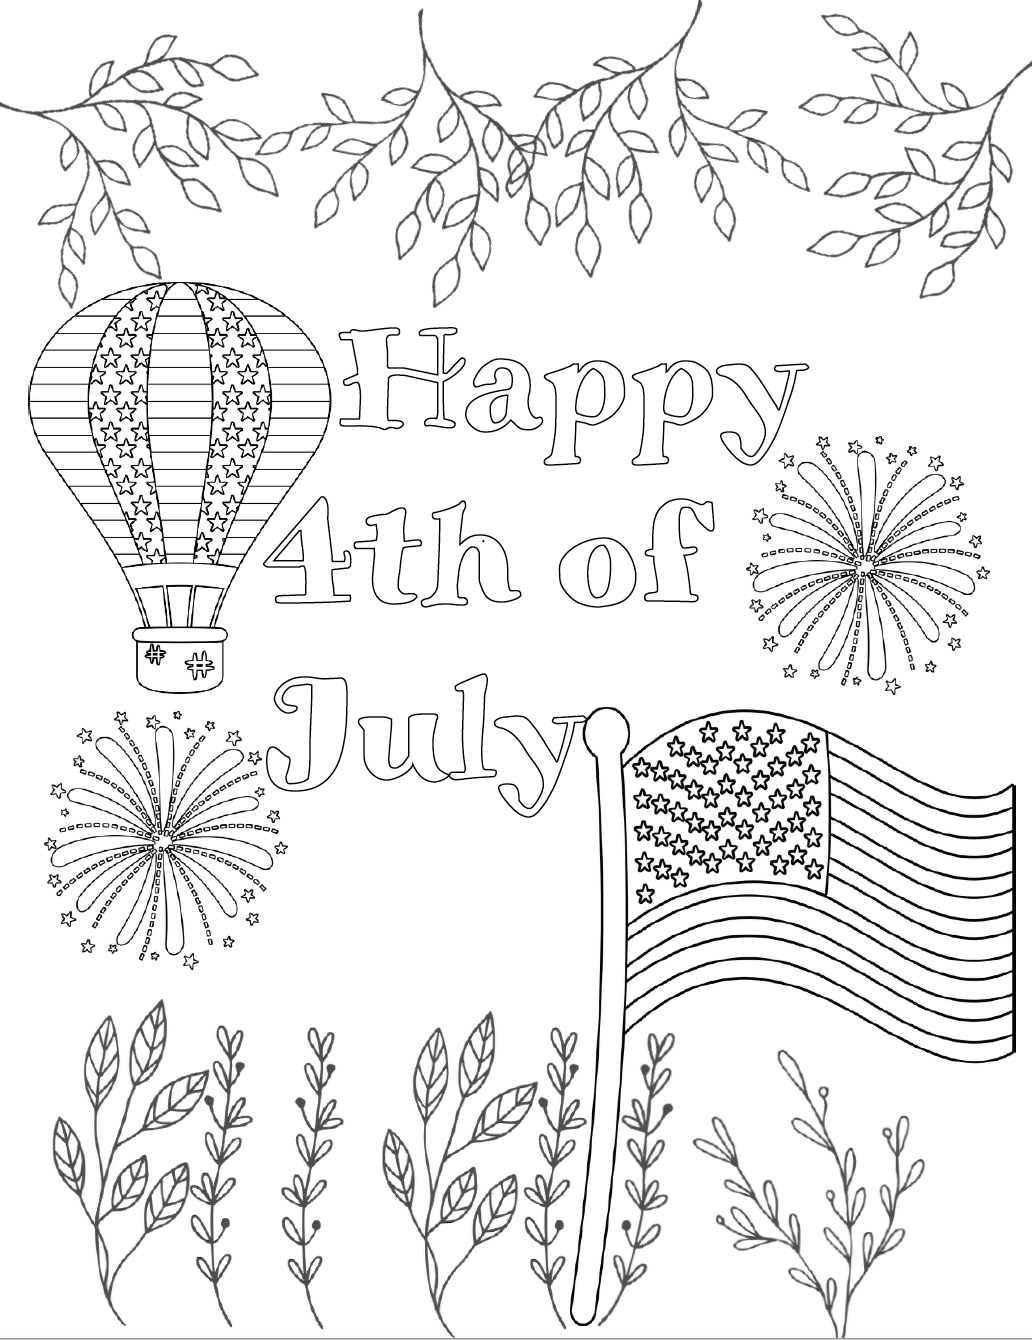 coloring pages 4th of july free printable 4th of july coloring pages of july pages coloring 4th